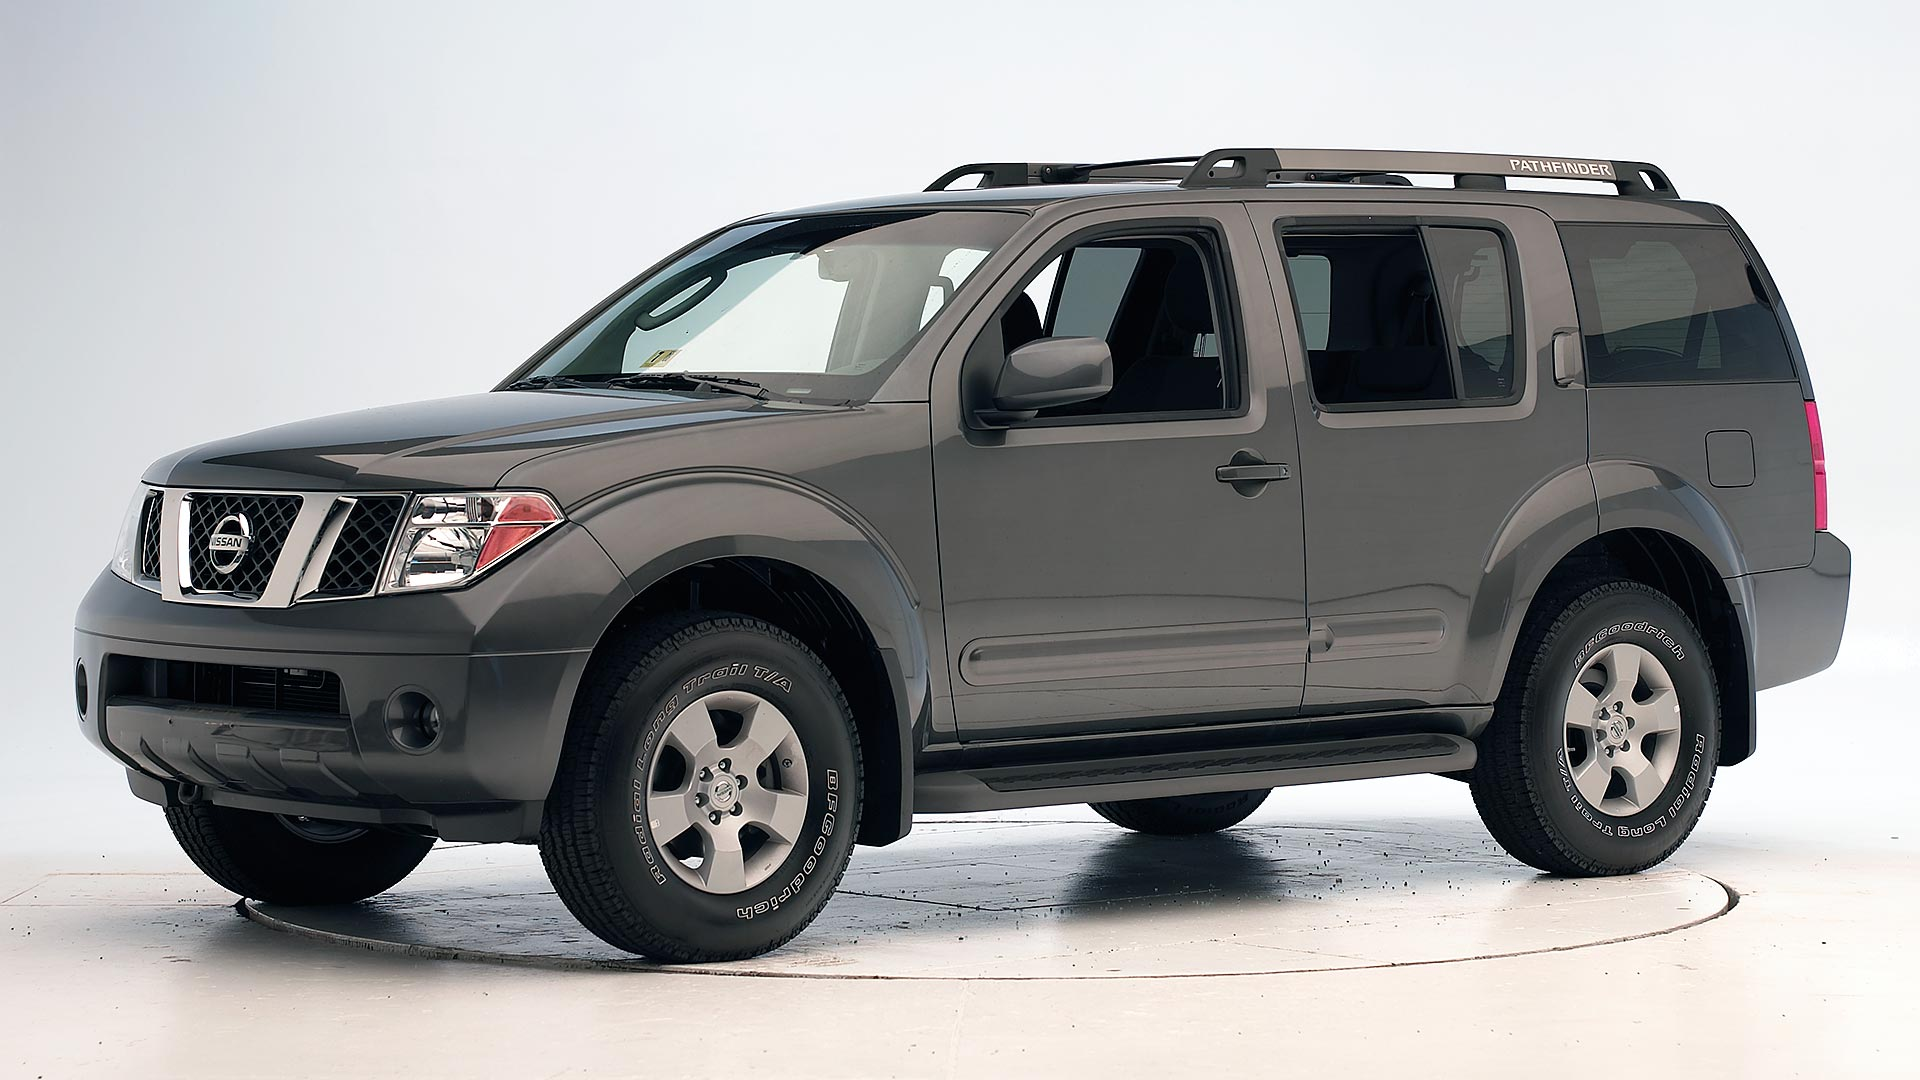 2012 Nissan Pathfinder 4-door SUV